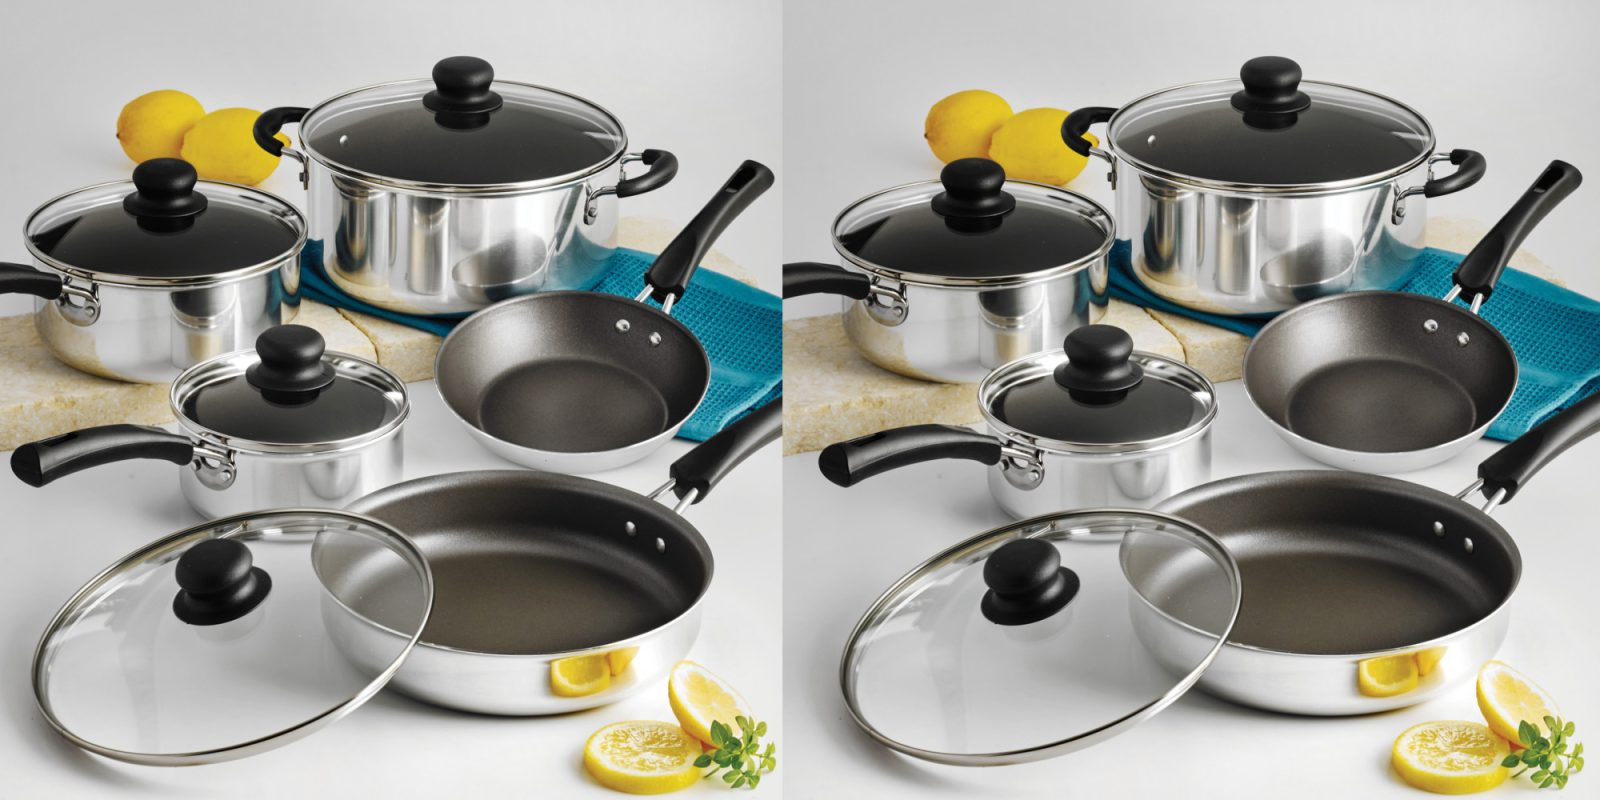 This 9-piece Tramontina Non-Stick Cookware Set is now just $15 (25% off)